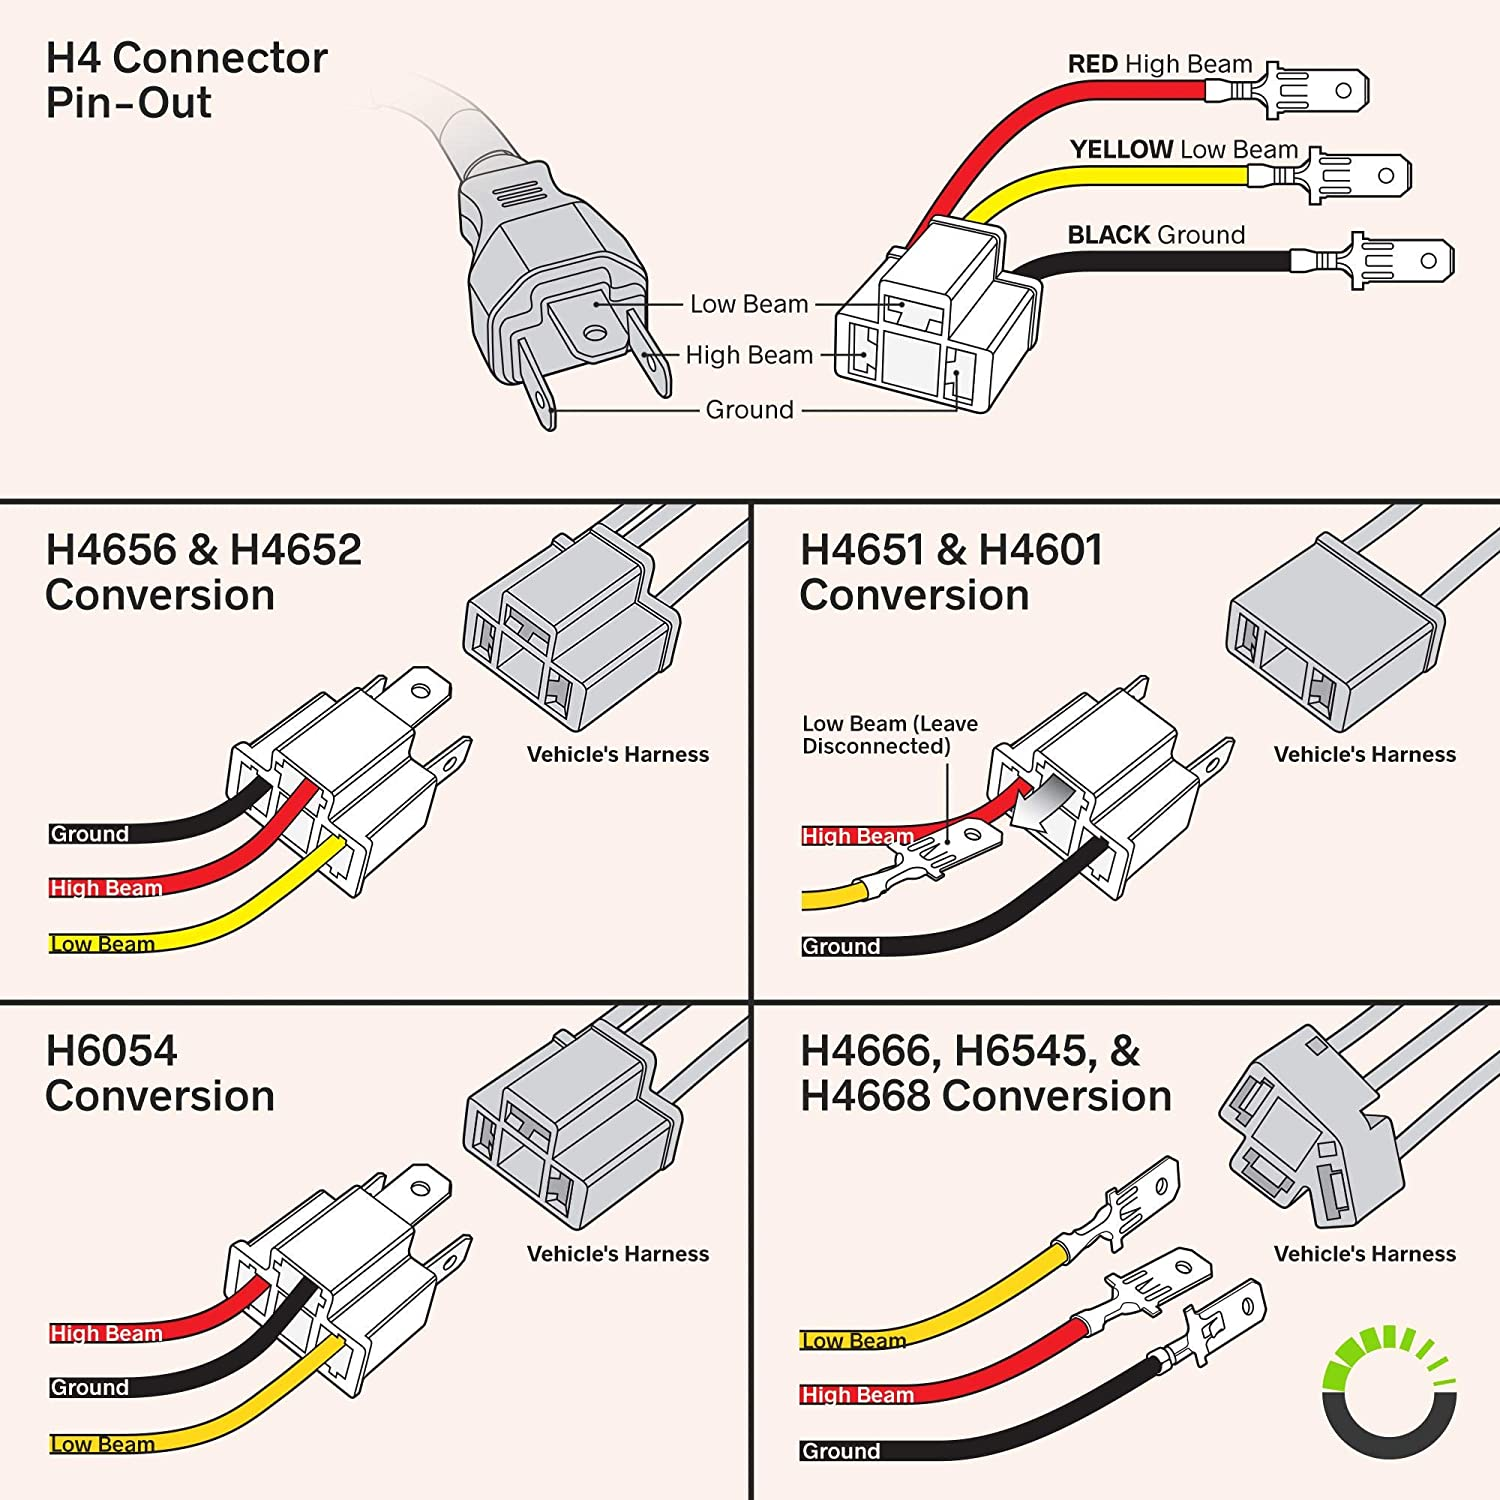 H4656 Wiring Diagram | Wiring Diagram on